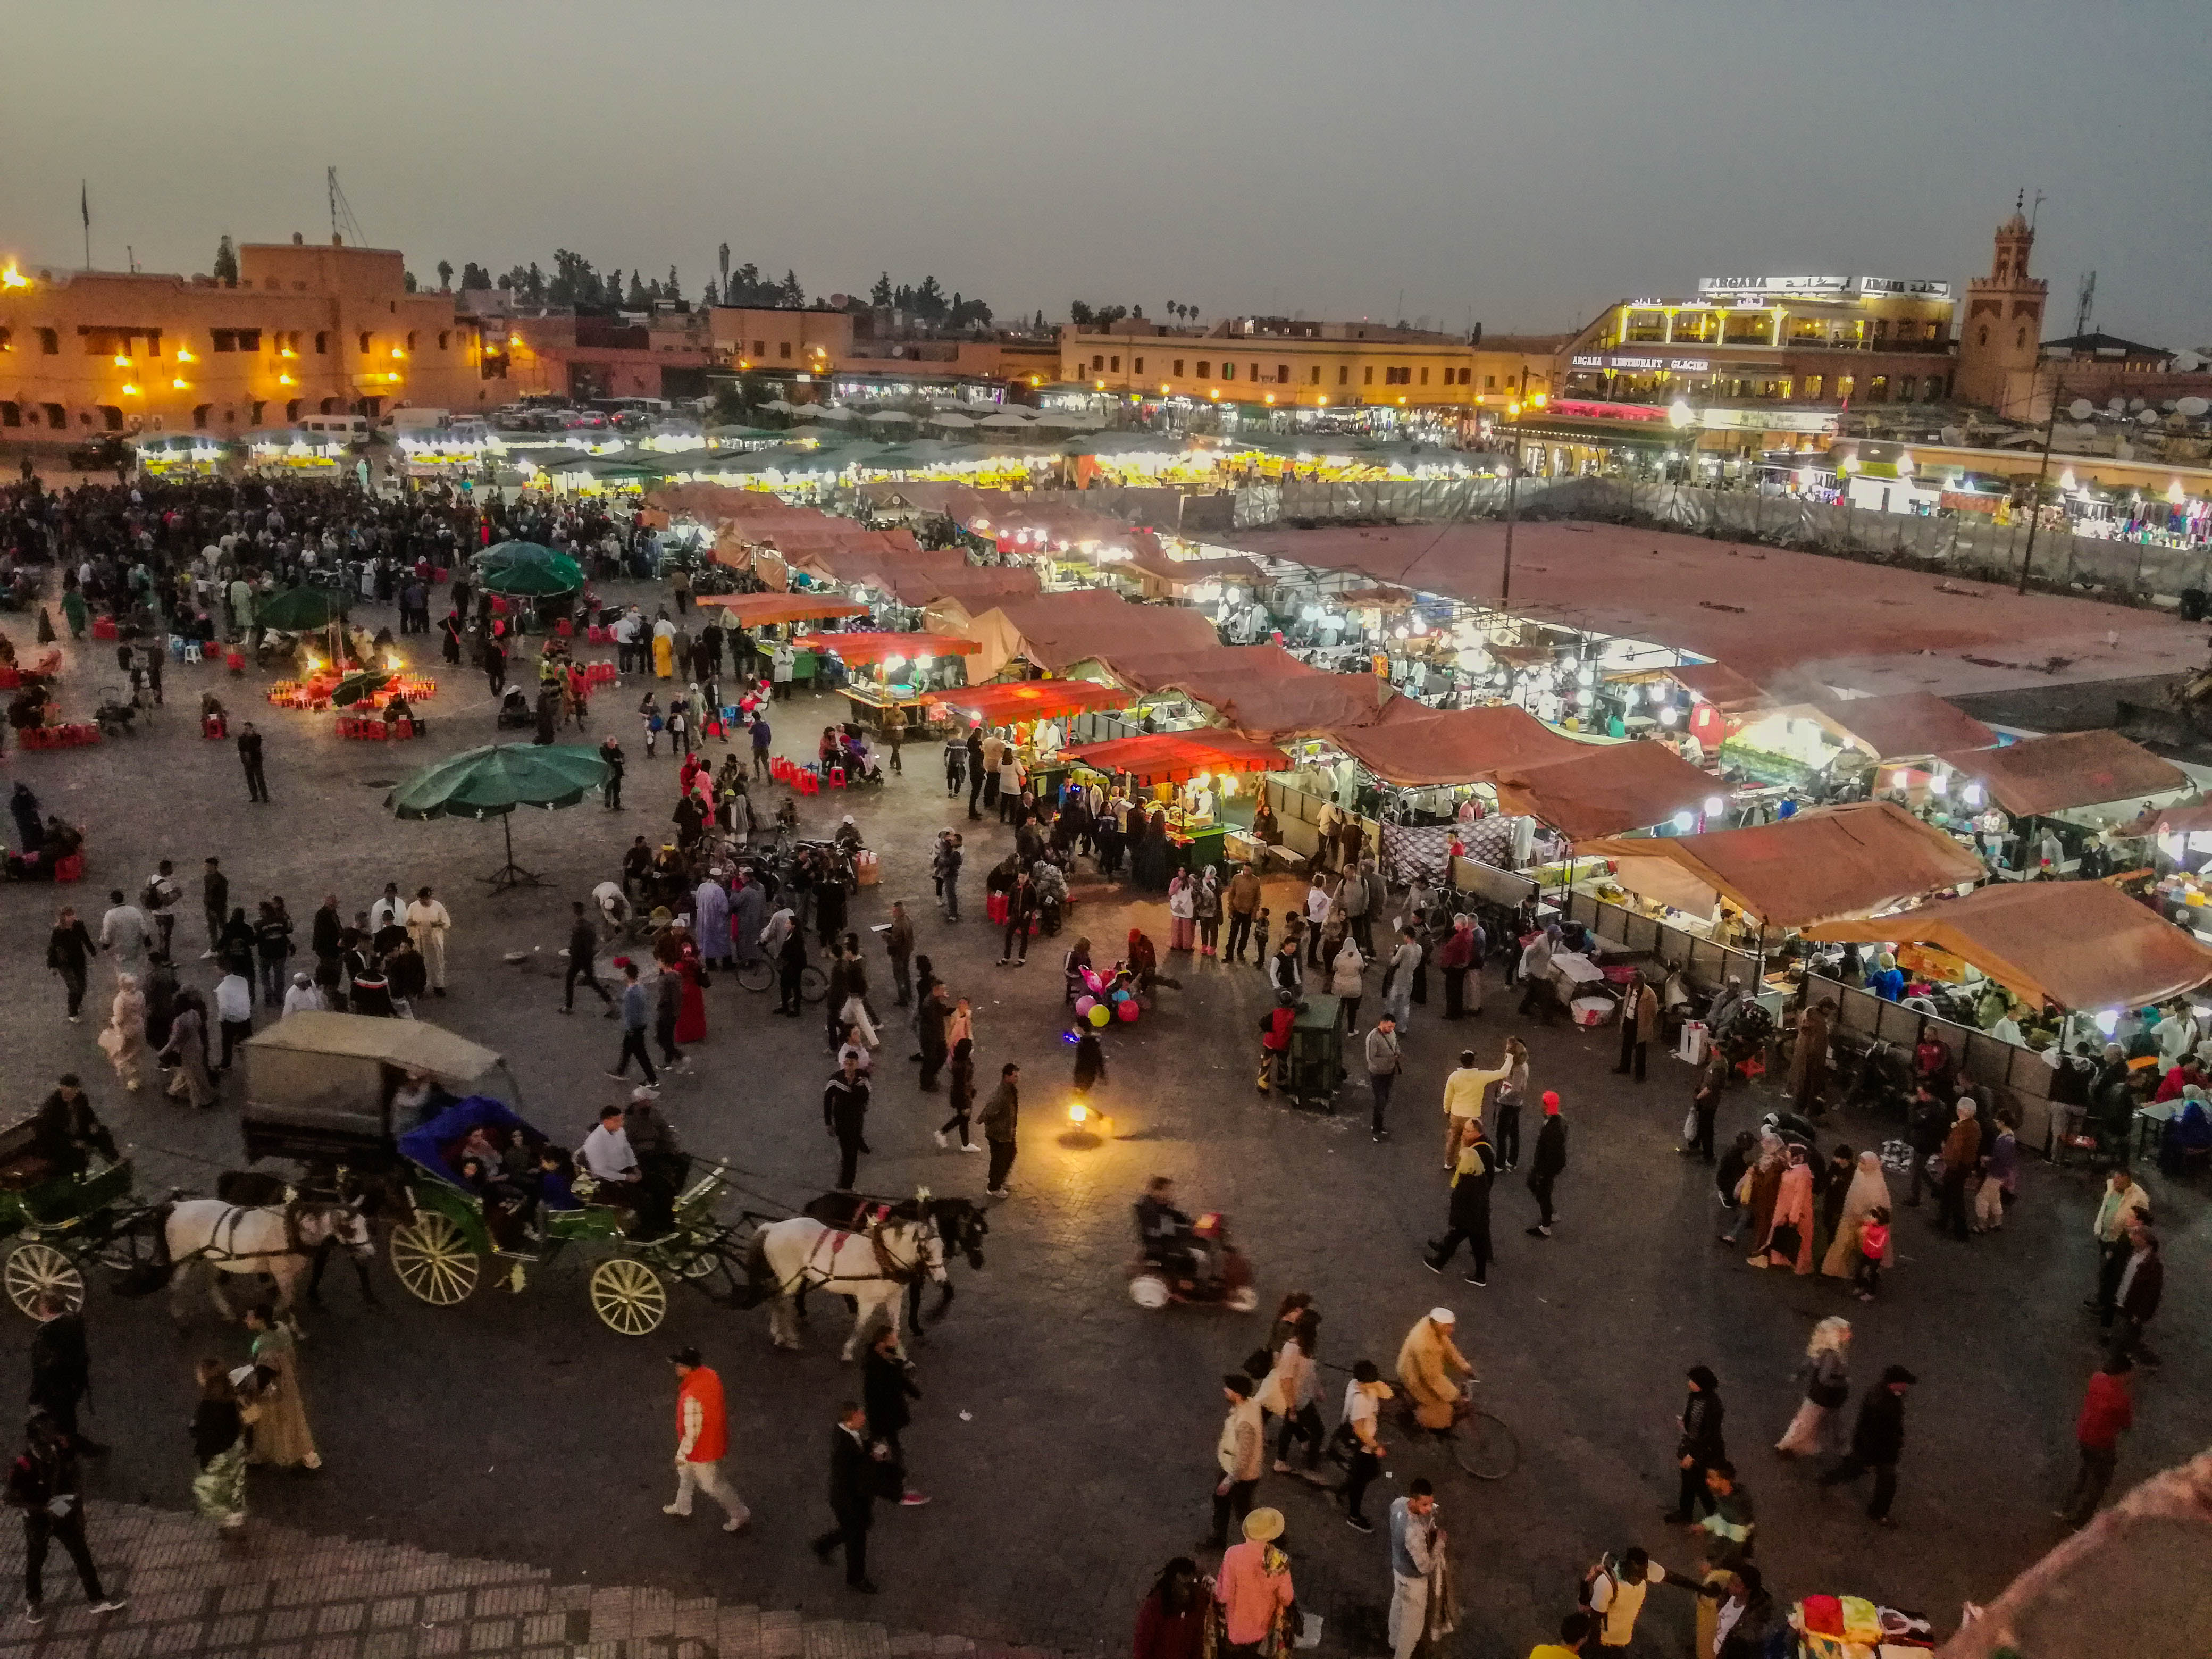 Marrakech Travel Tips: What to Do, What to Eat, What to Avoid